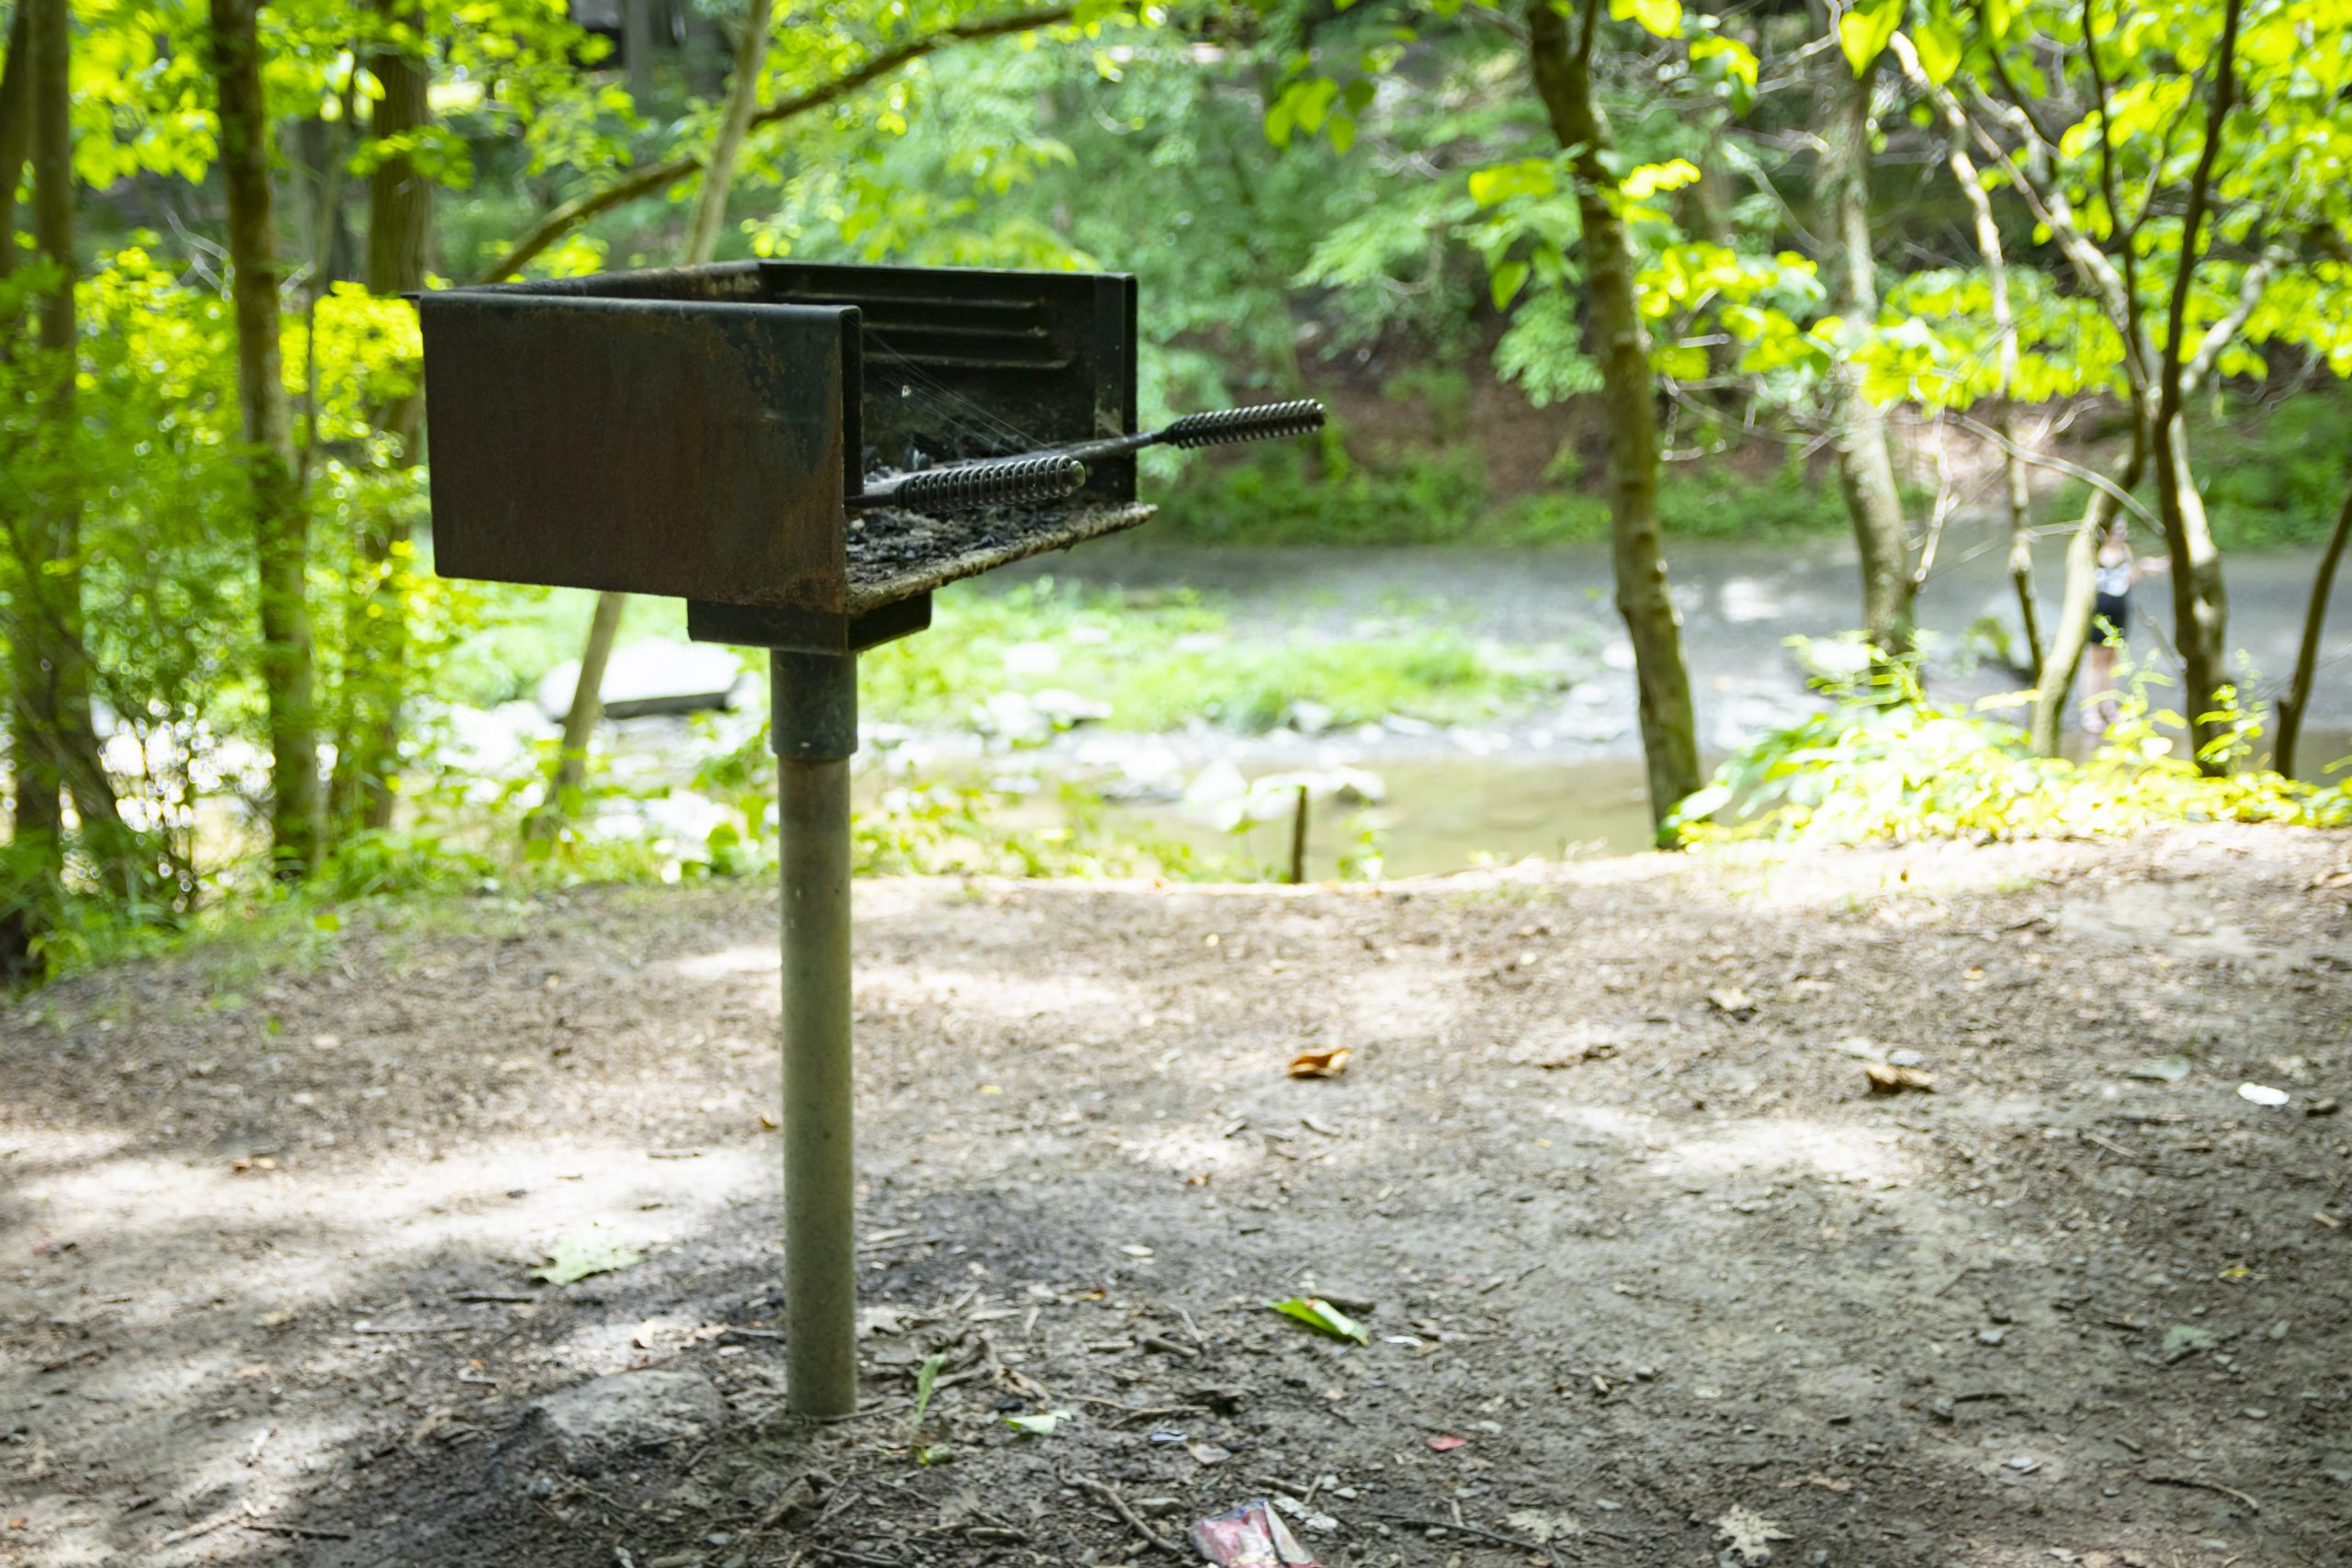 standing grill at recreational public campsite or picnic site